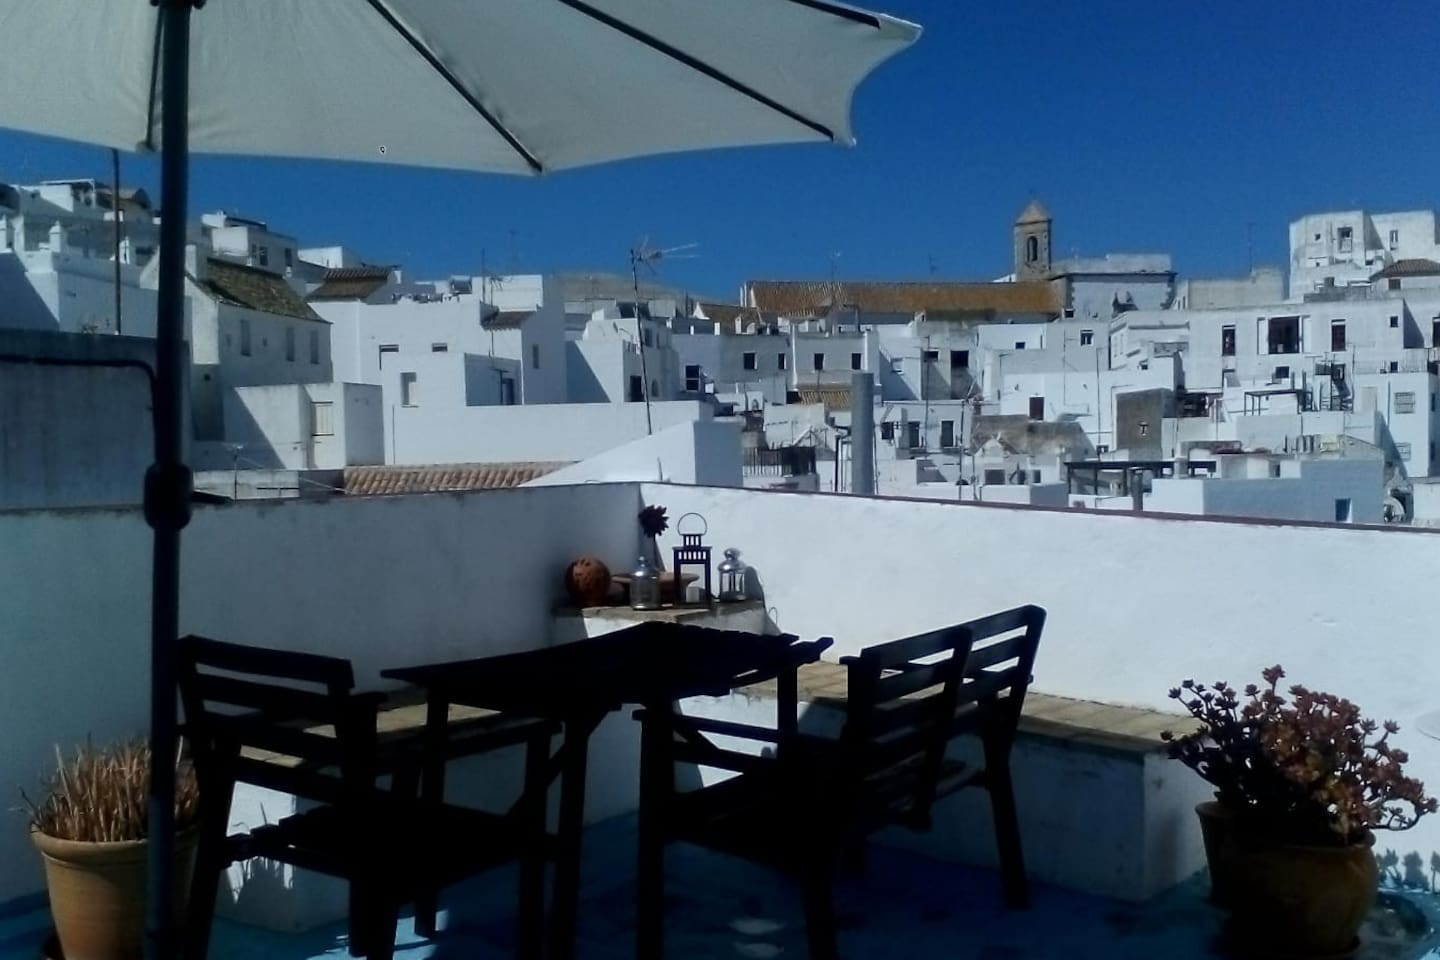 Views from the roof top terrace - welcome to Vejer!